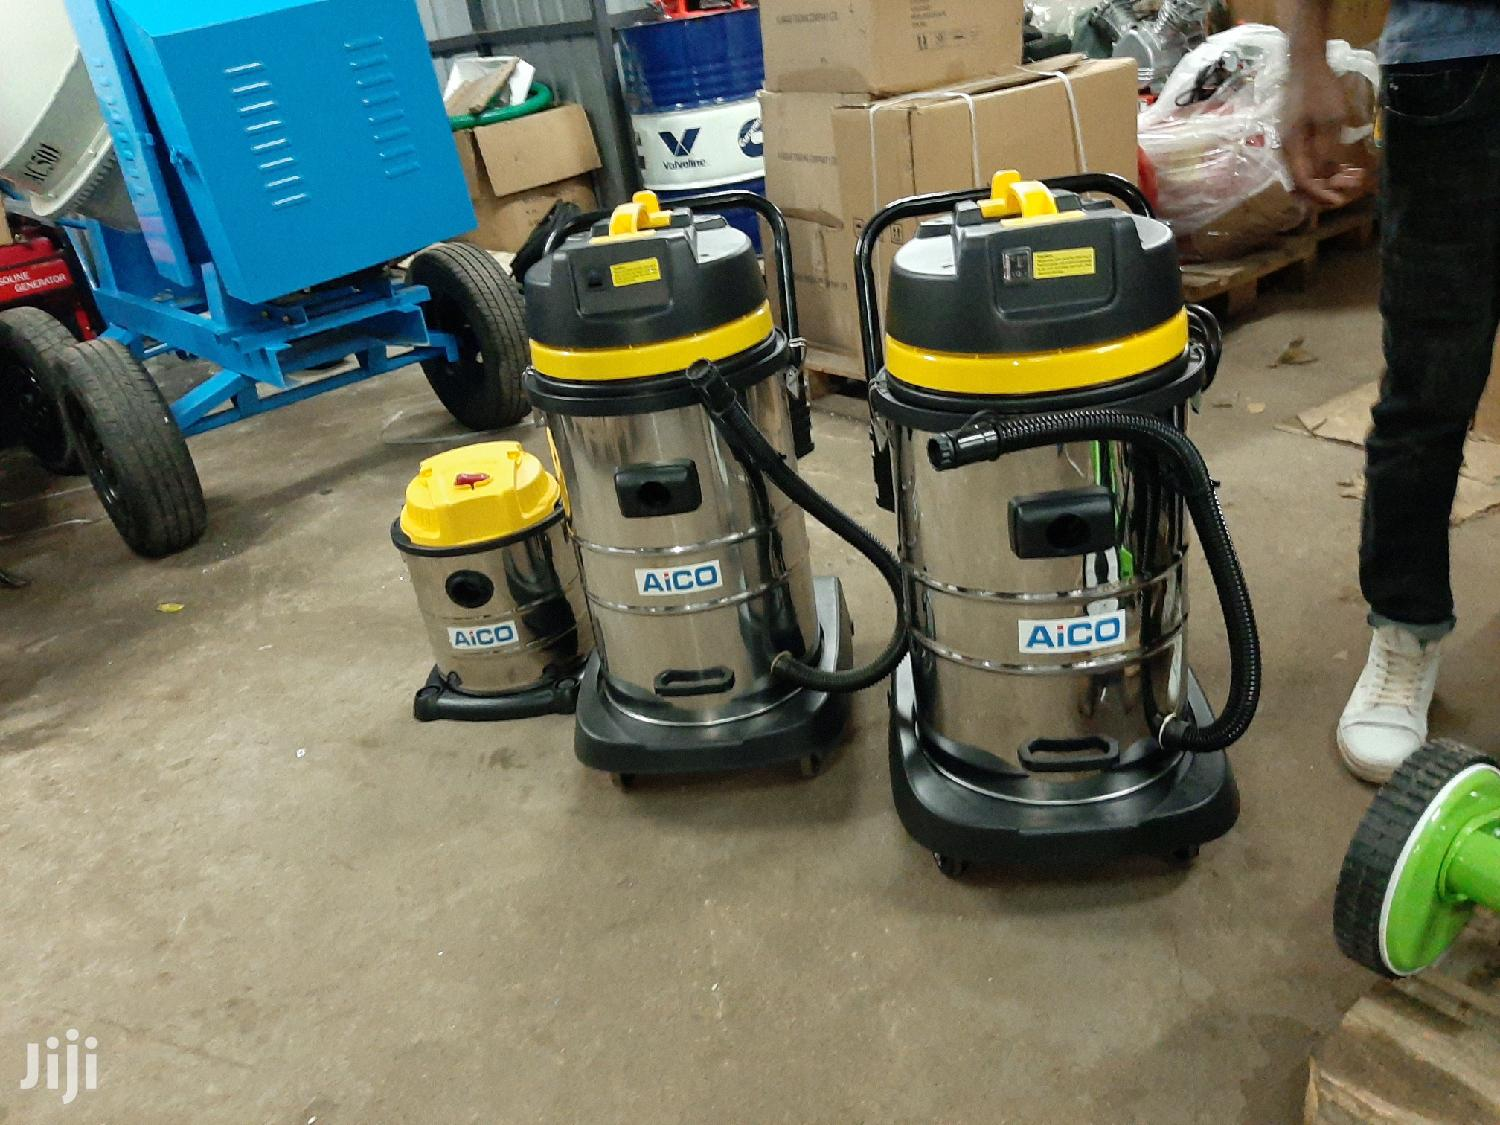 Aico Wet And Dry Vacuum Cleaners